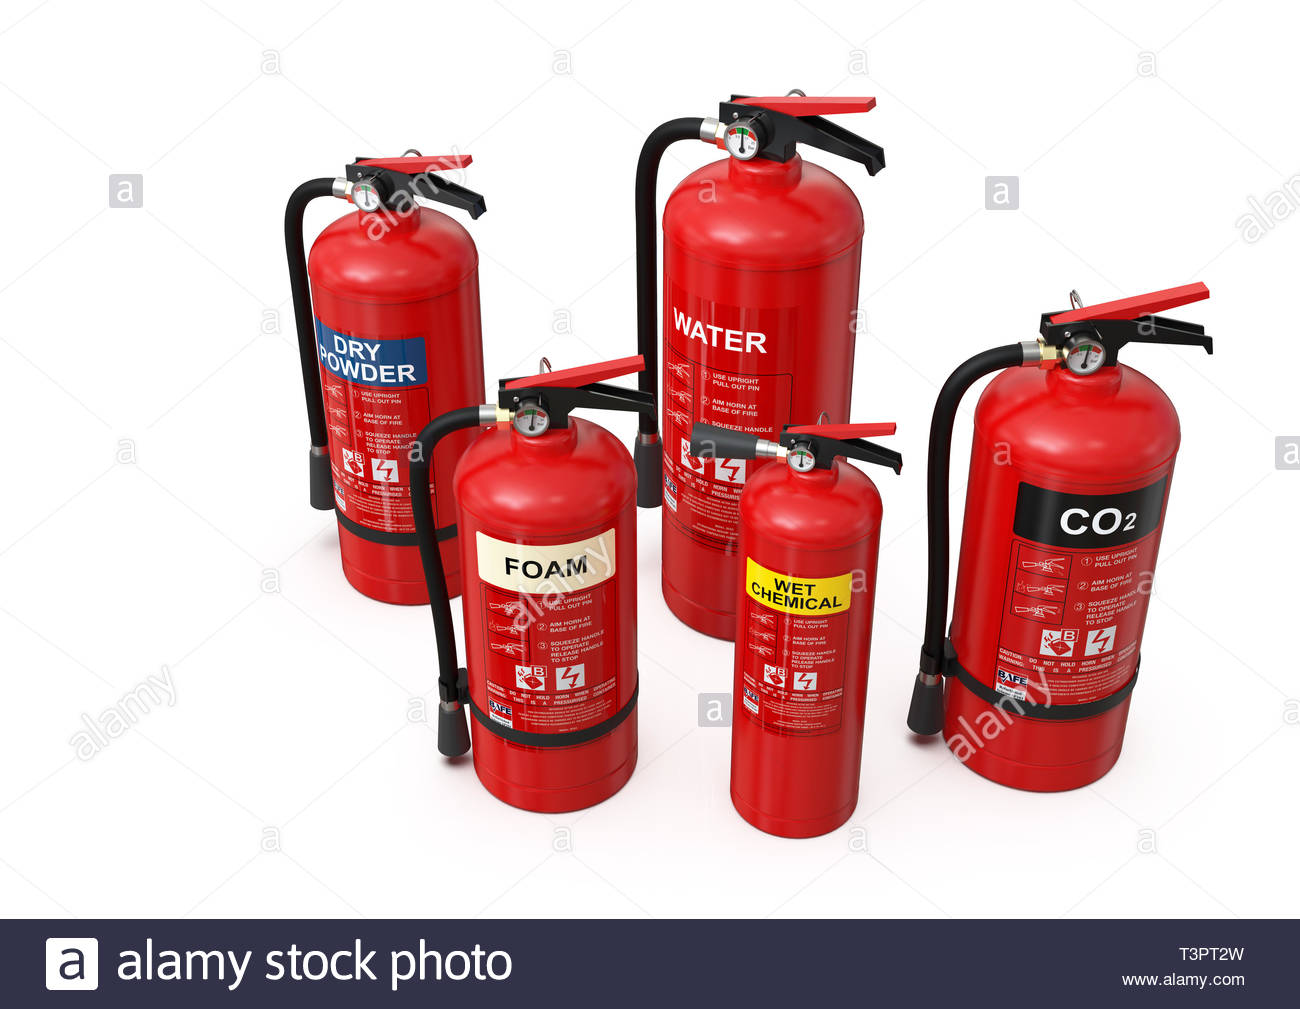 Group of ten different types of red fire extinguishers (CO2, foam, dry powder, wet chemical, water); clean, minimalist and clear composition - Stock Image